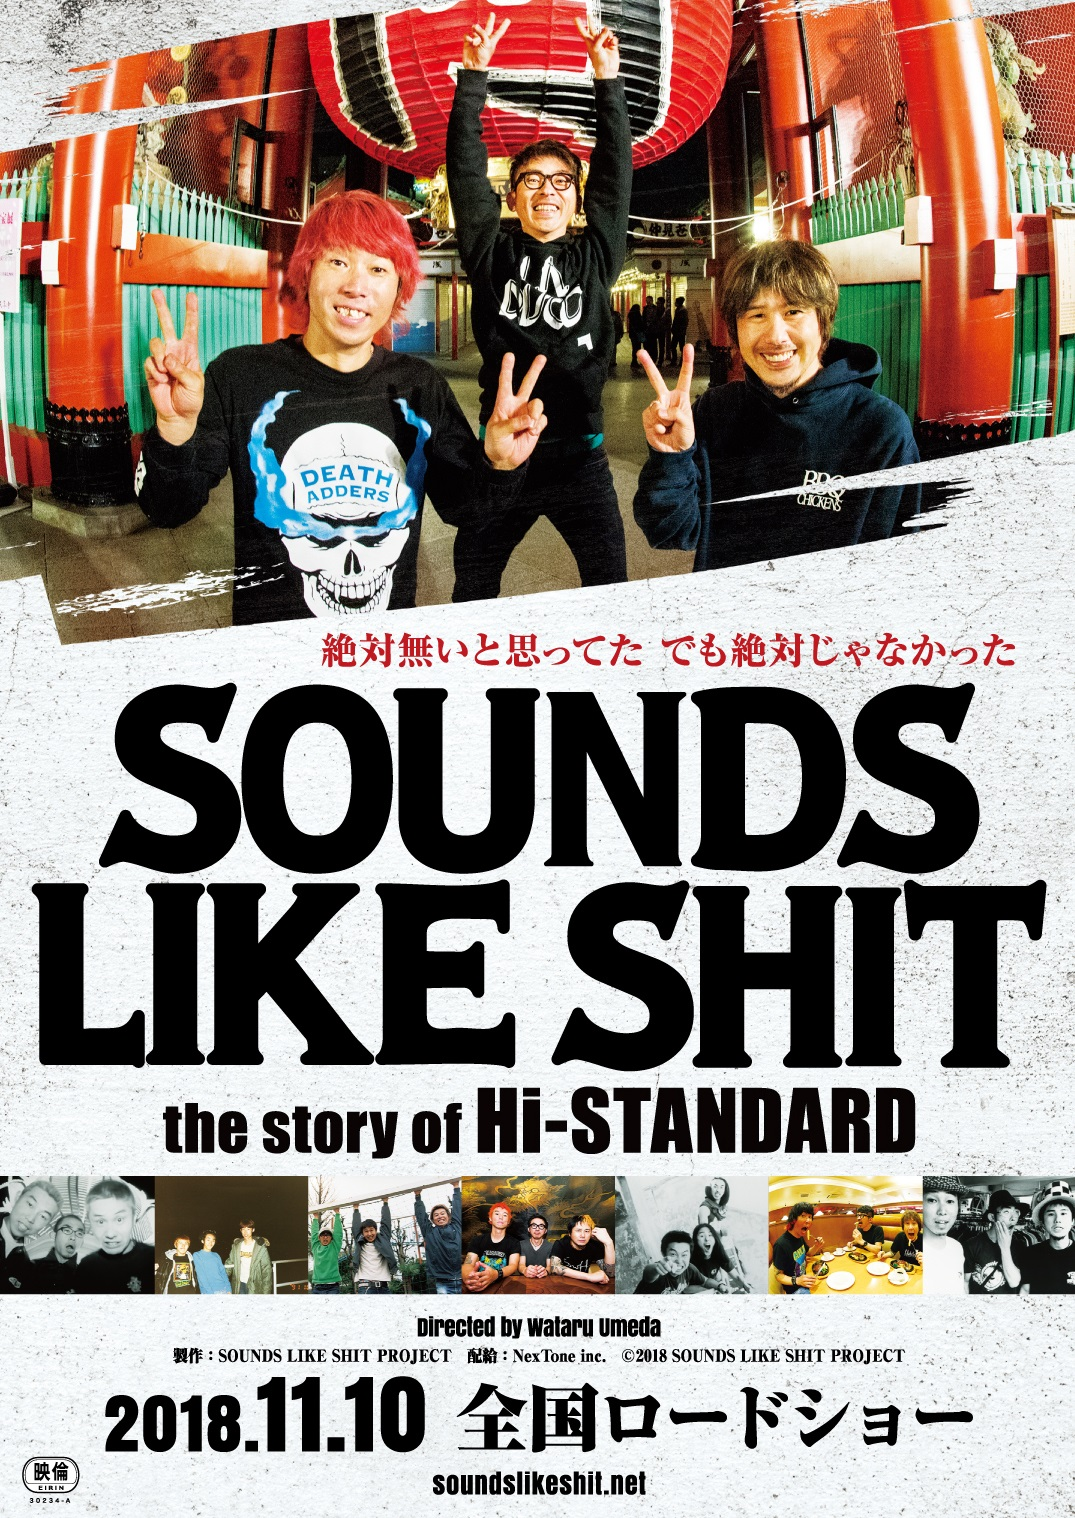 映画「SOUNDS LIKE SHIT: the story of Hi-STANDARD」公開中!